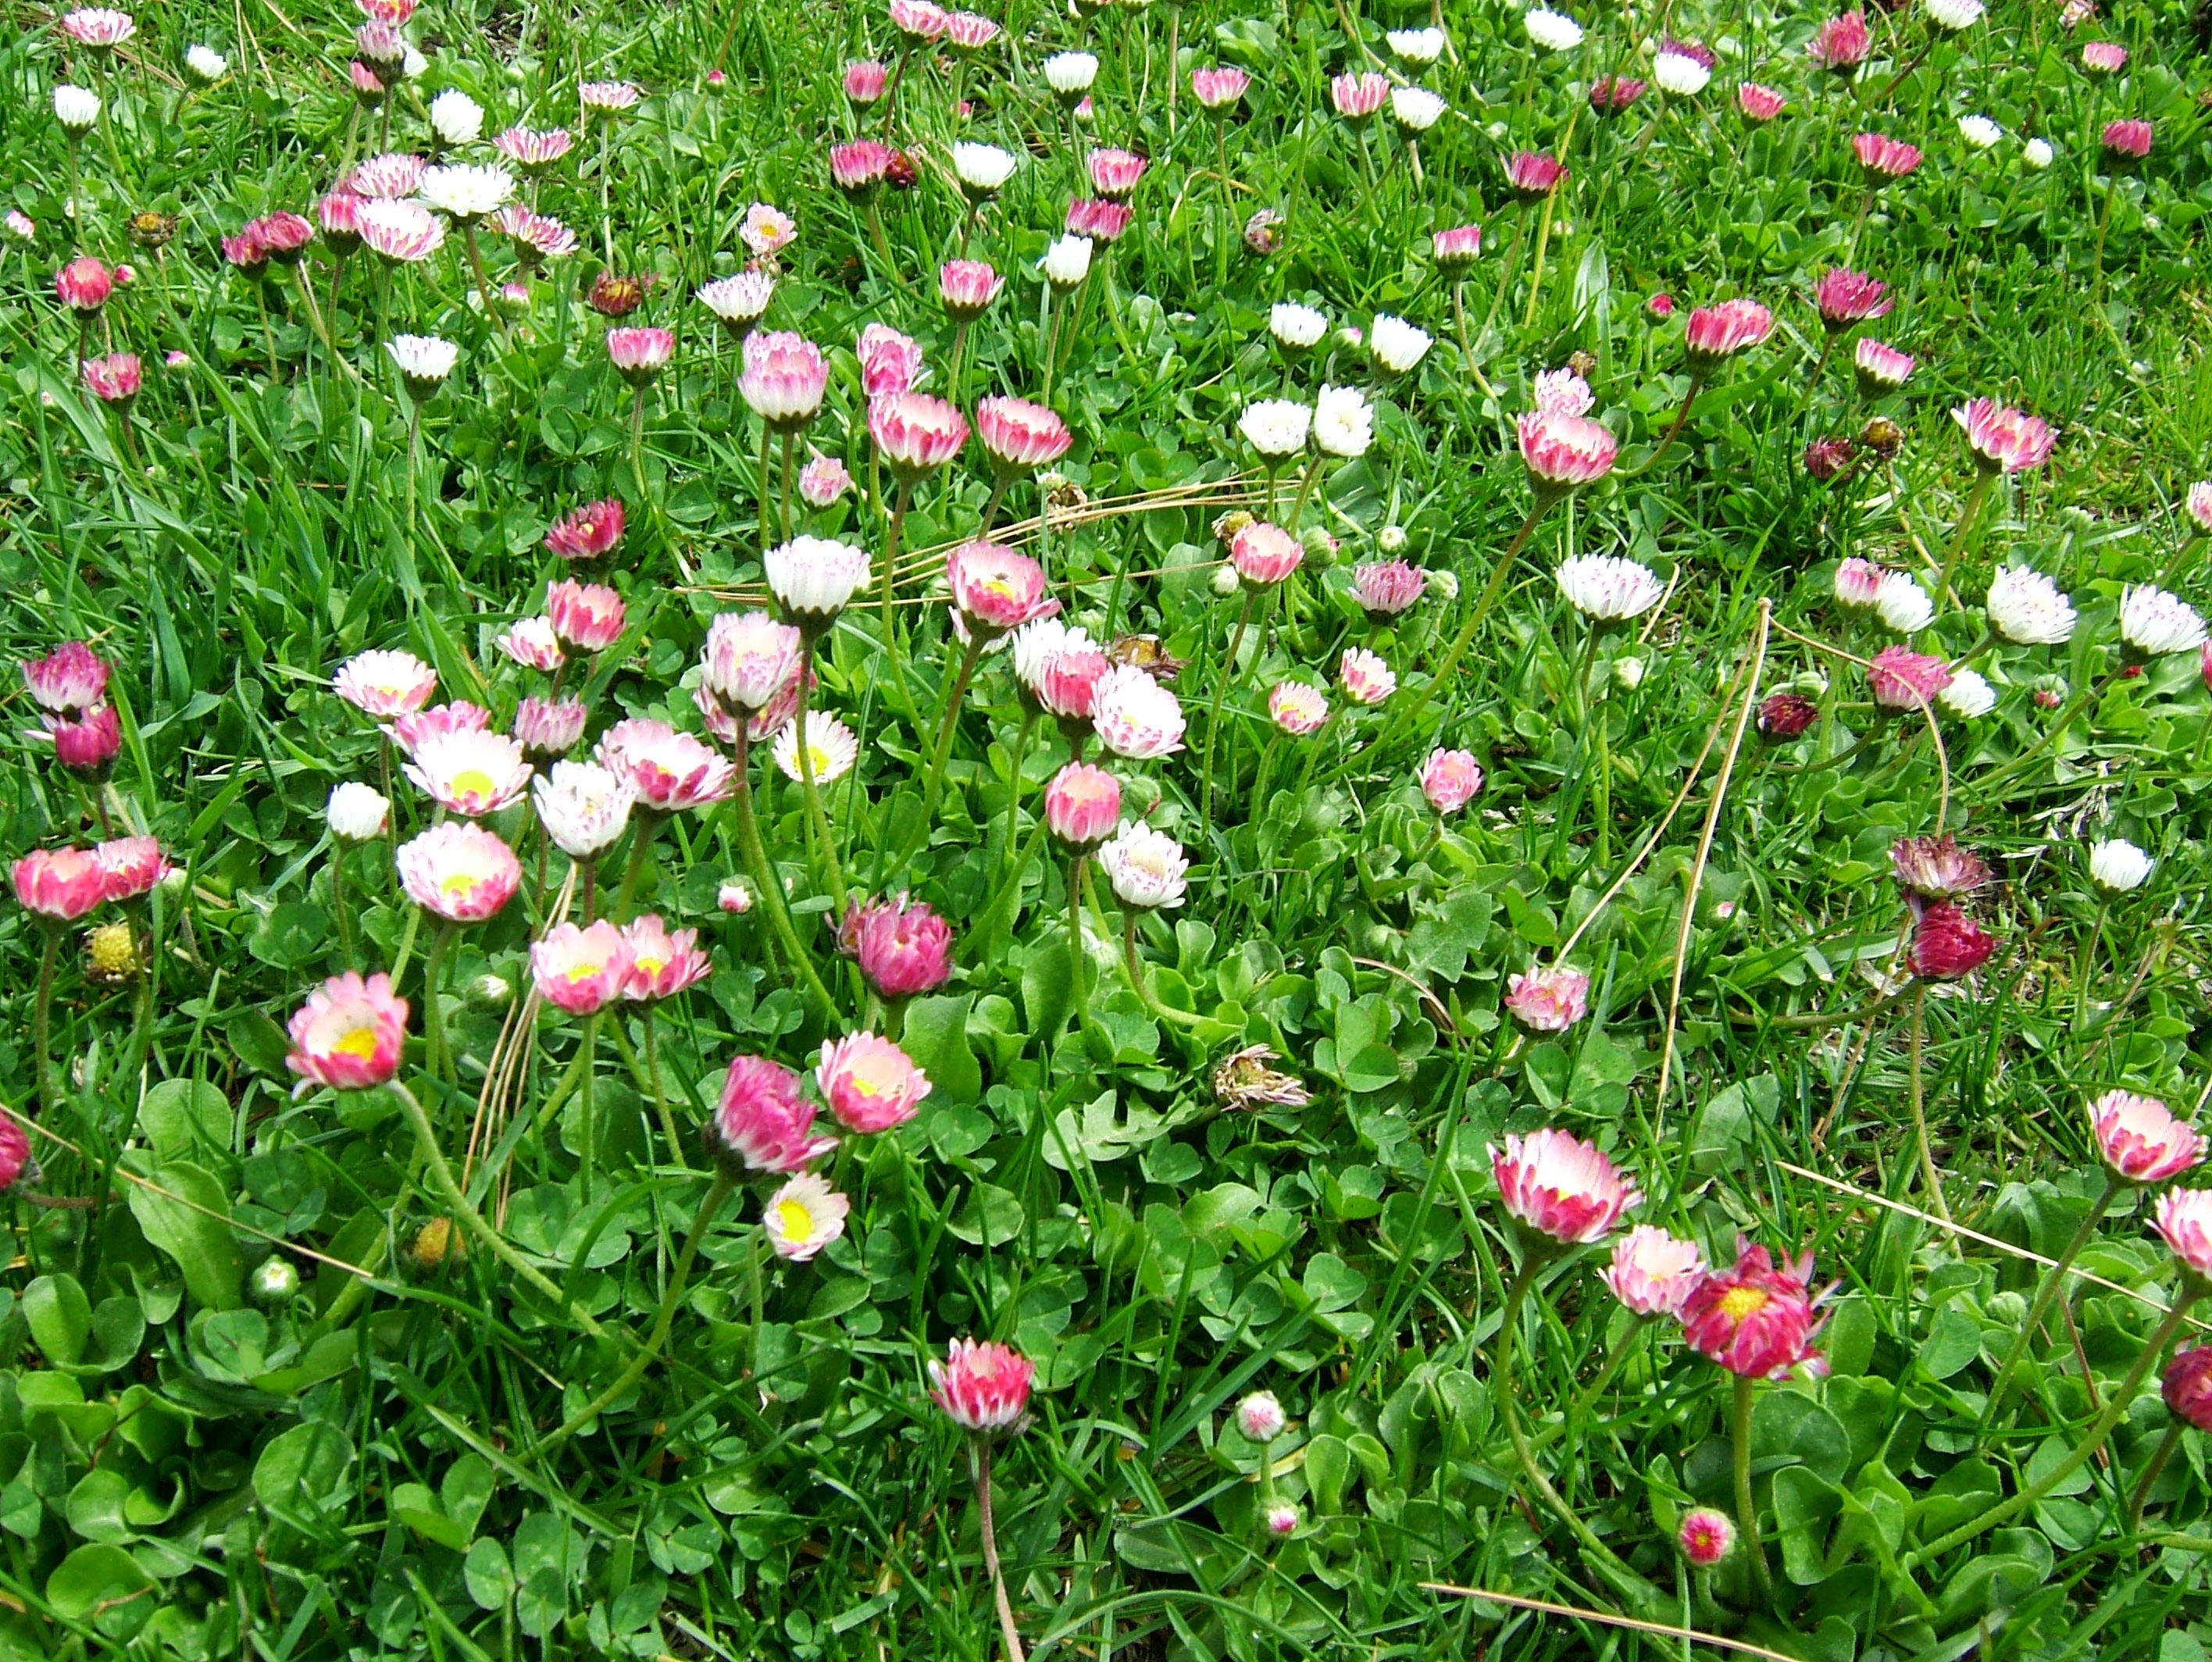 Local Wild spring flowers Srinagar Kashmir India 04